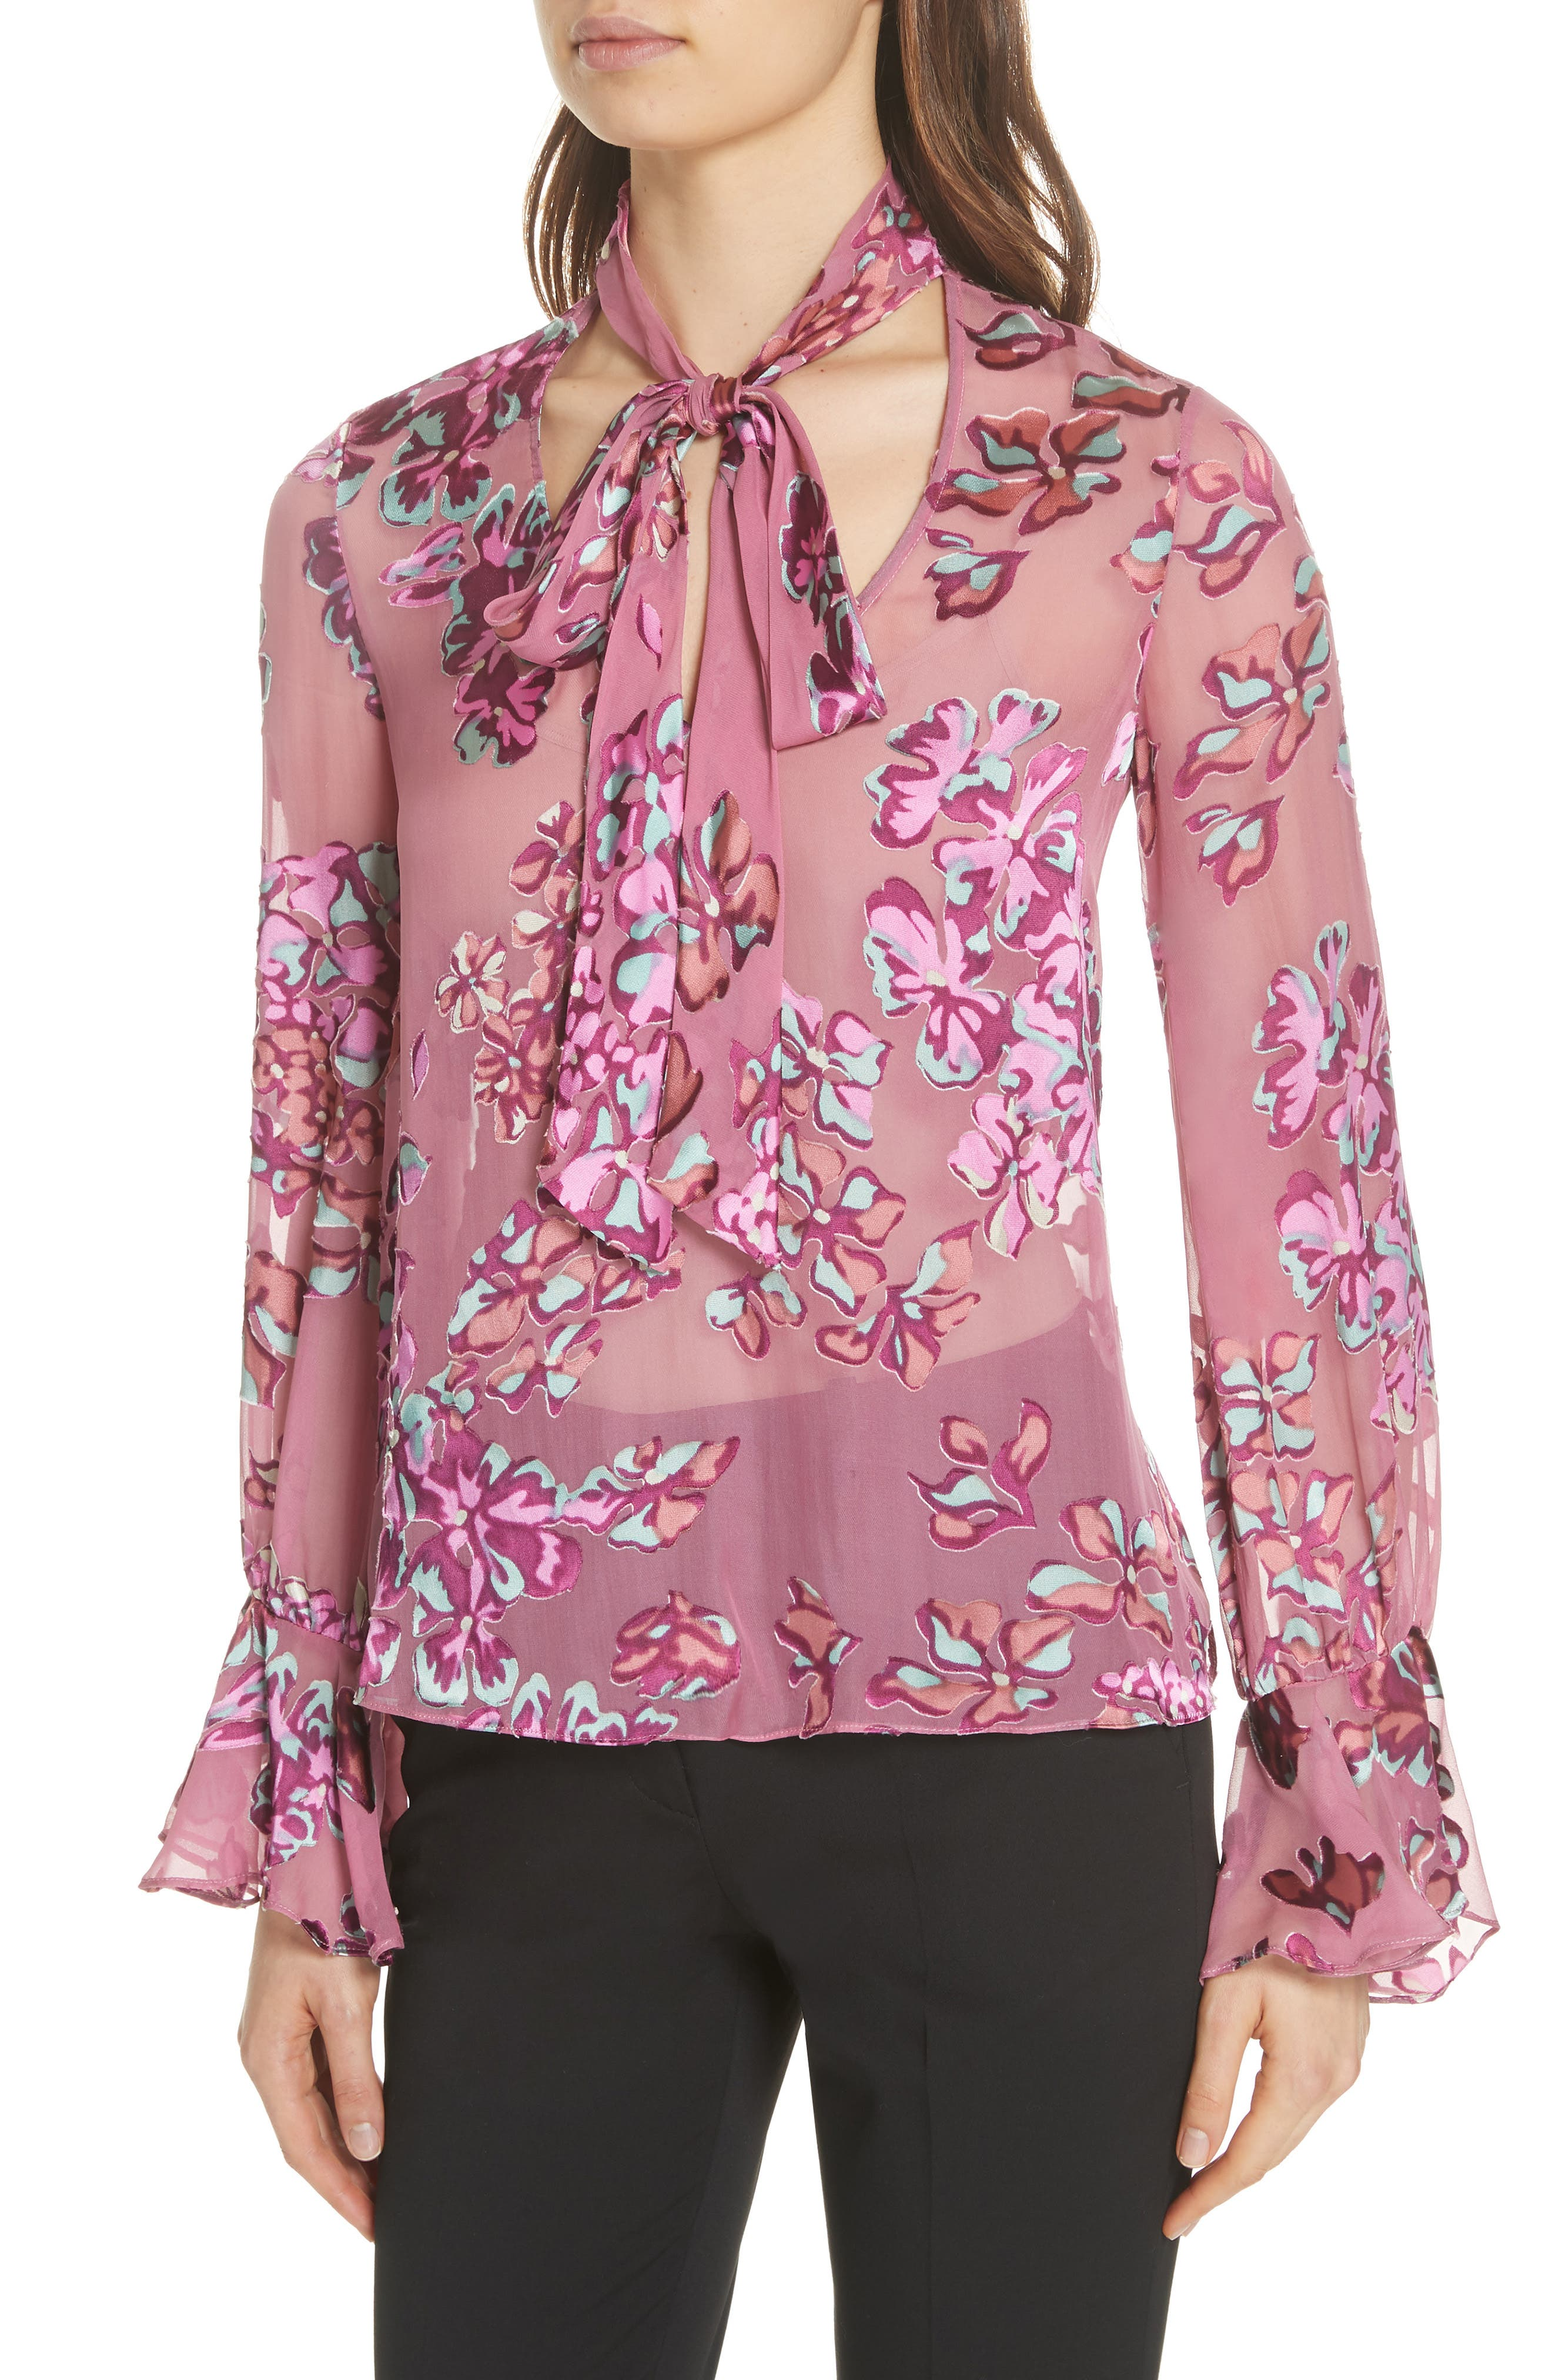 Lauren Floral Tie Neck Top,                             Alternate thumbnail 4, color,                             660